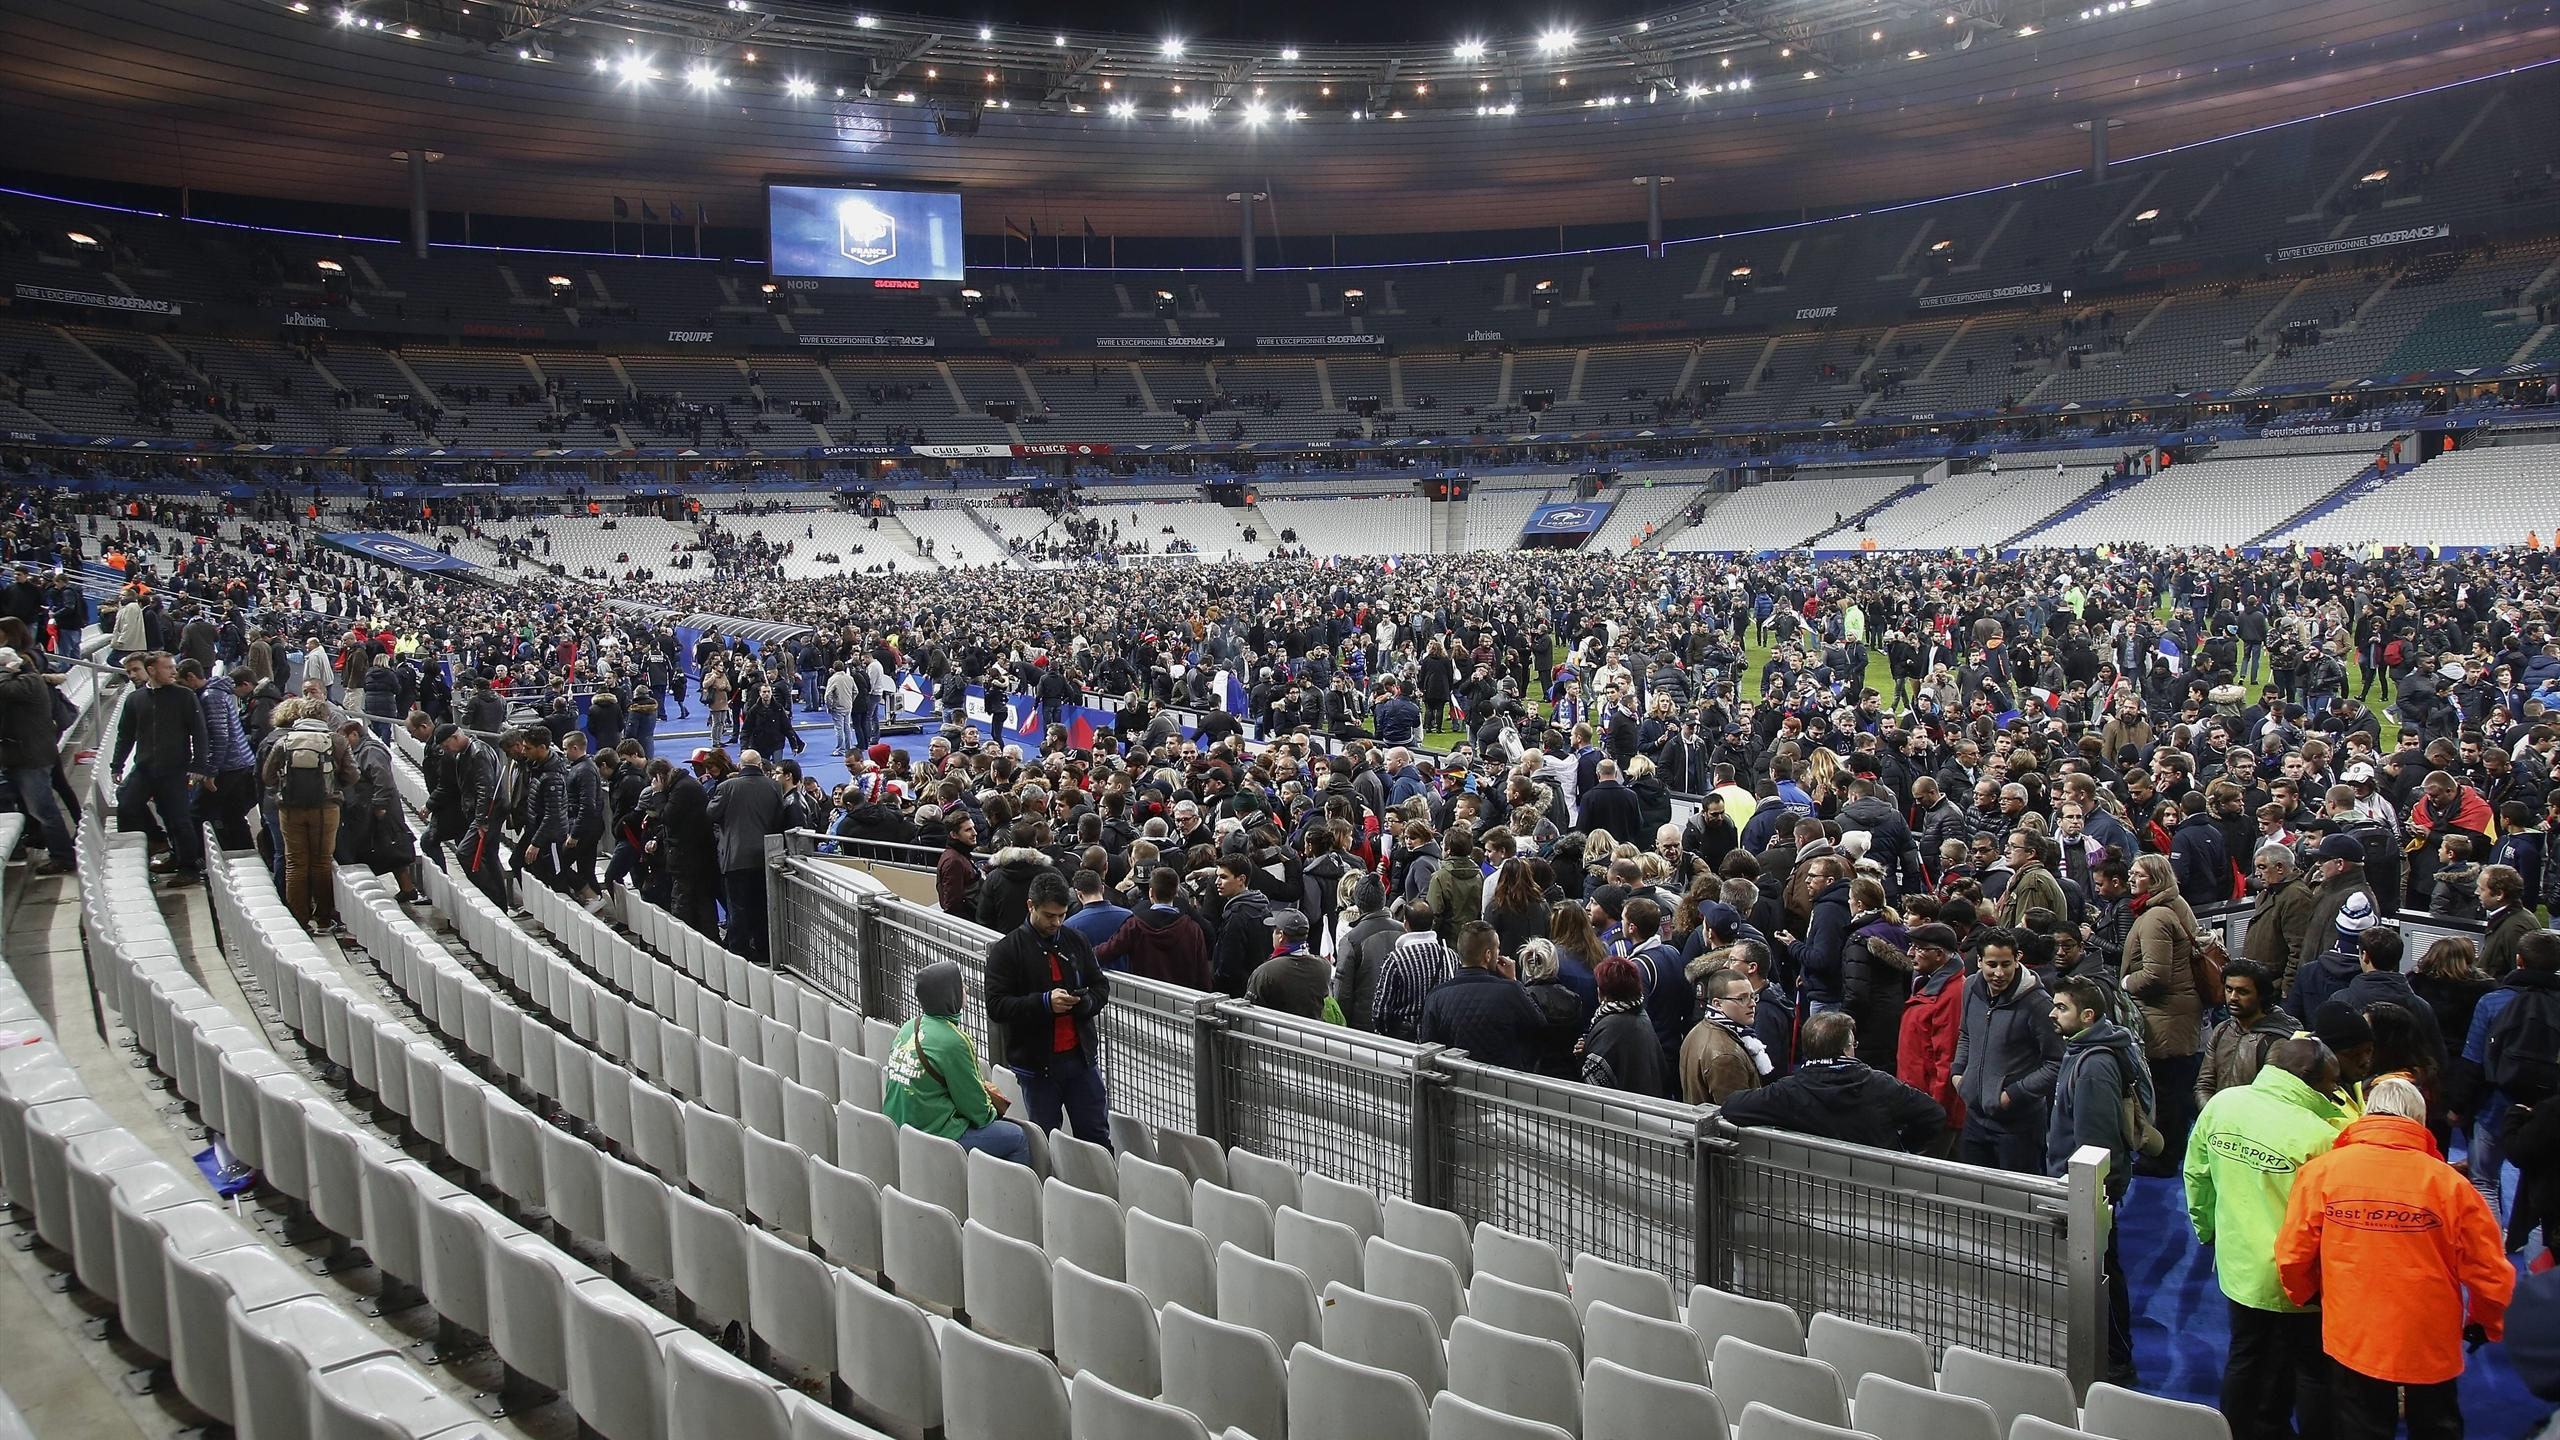 Security guard  prevented bomb detonating inside Stade de France  in     Security guard  prevented bomb detonating inside Stade de France  in Paris    Football   Eurosport UK